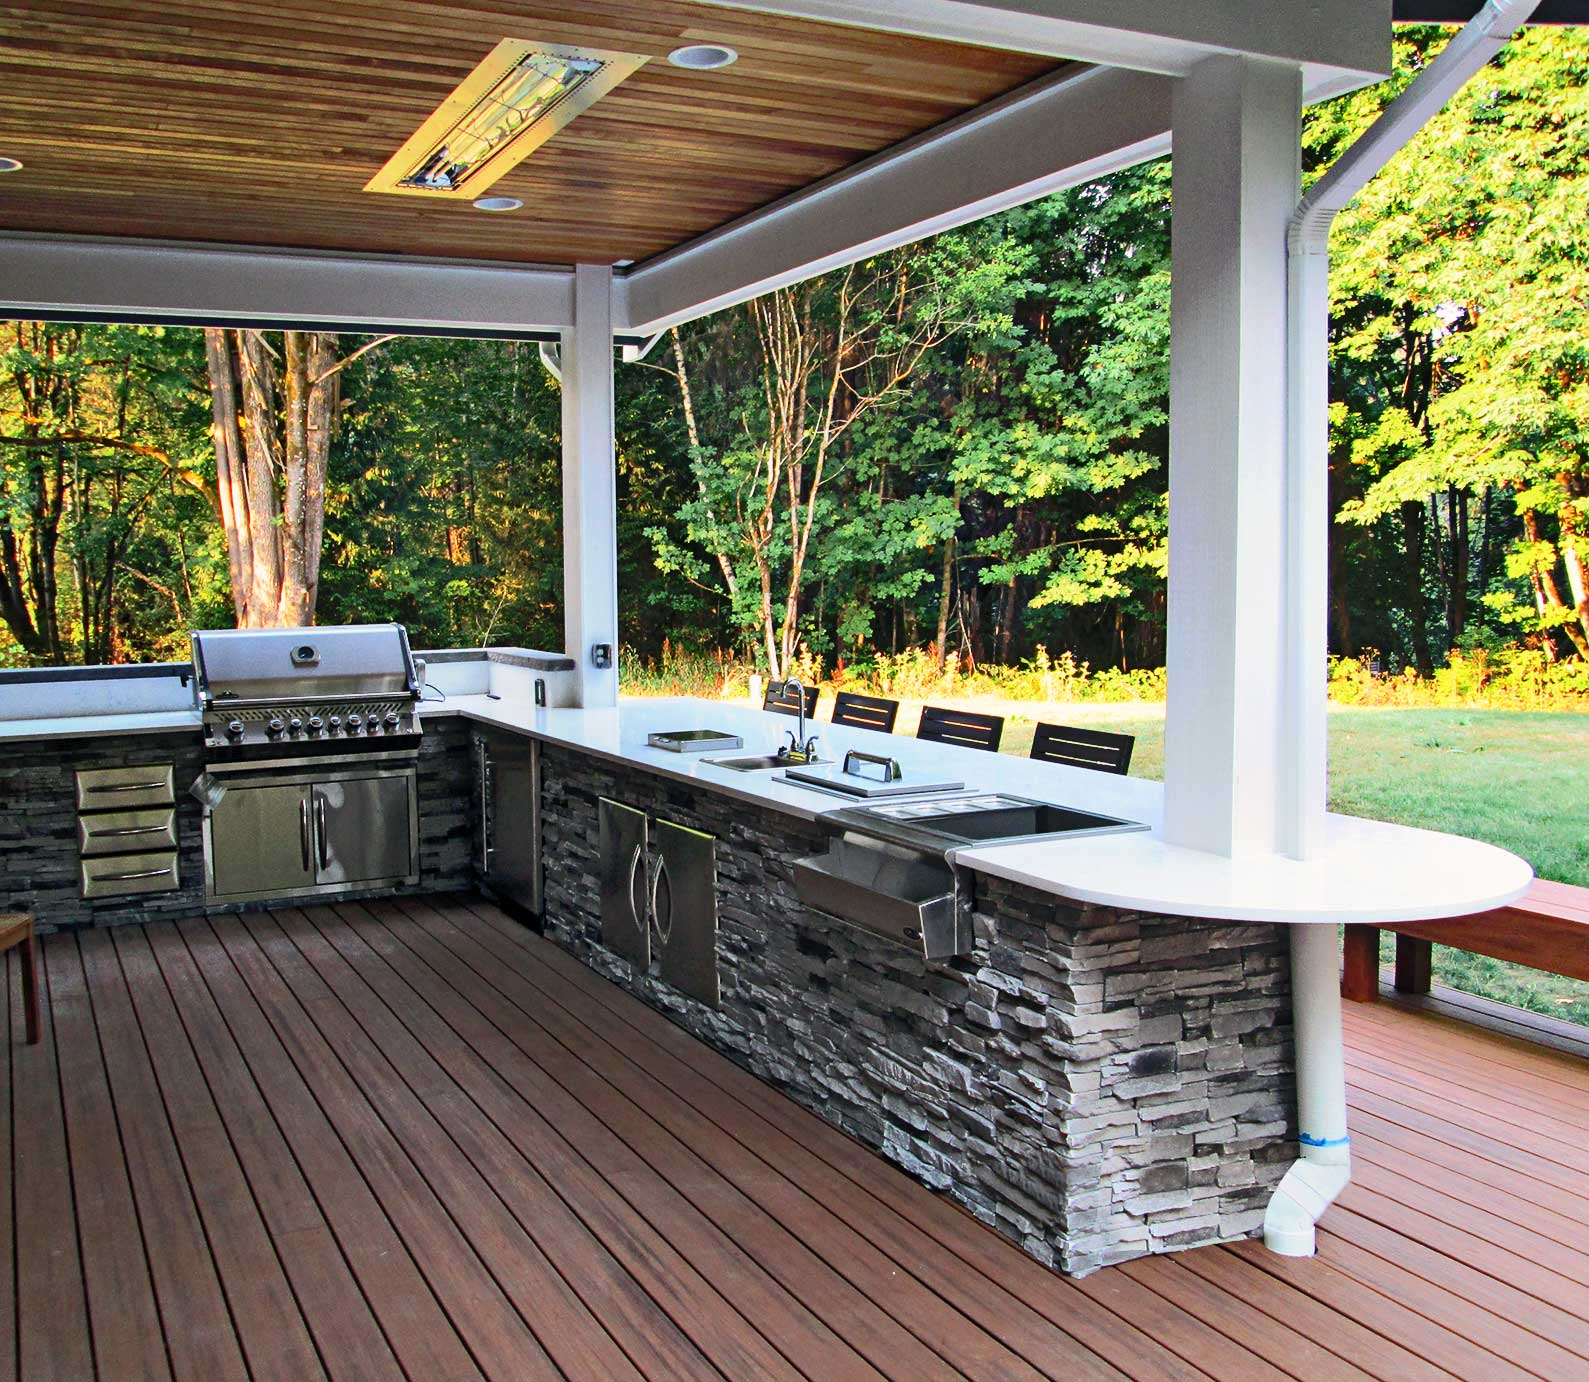 Porch Vs Deck Which Is The More Befitting For Your Home: Gerber Residence Back Patio Remodel